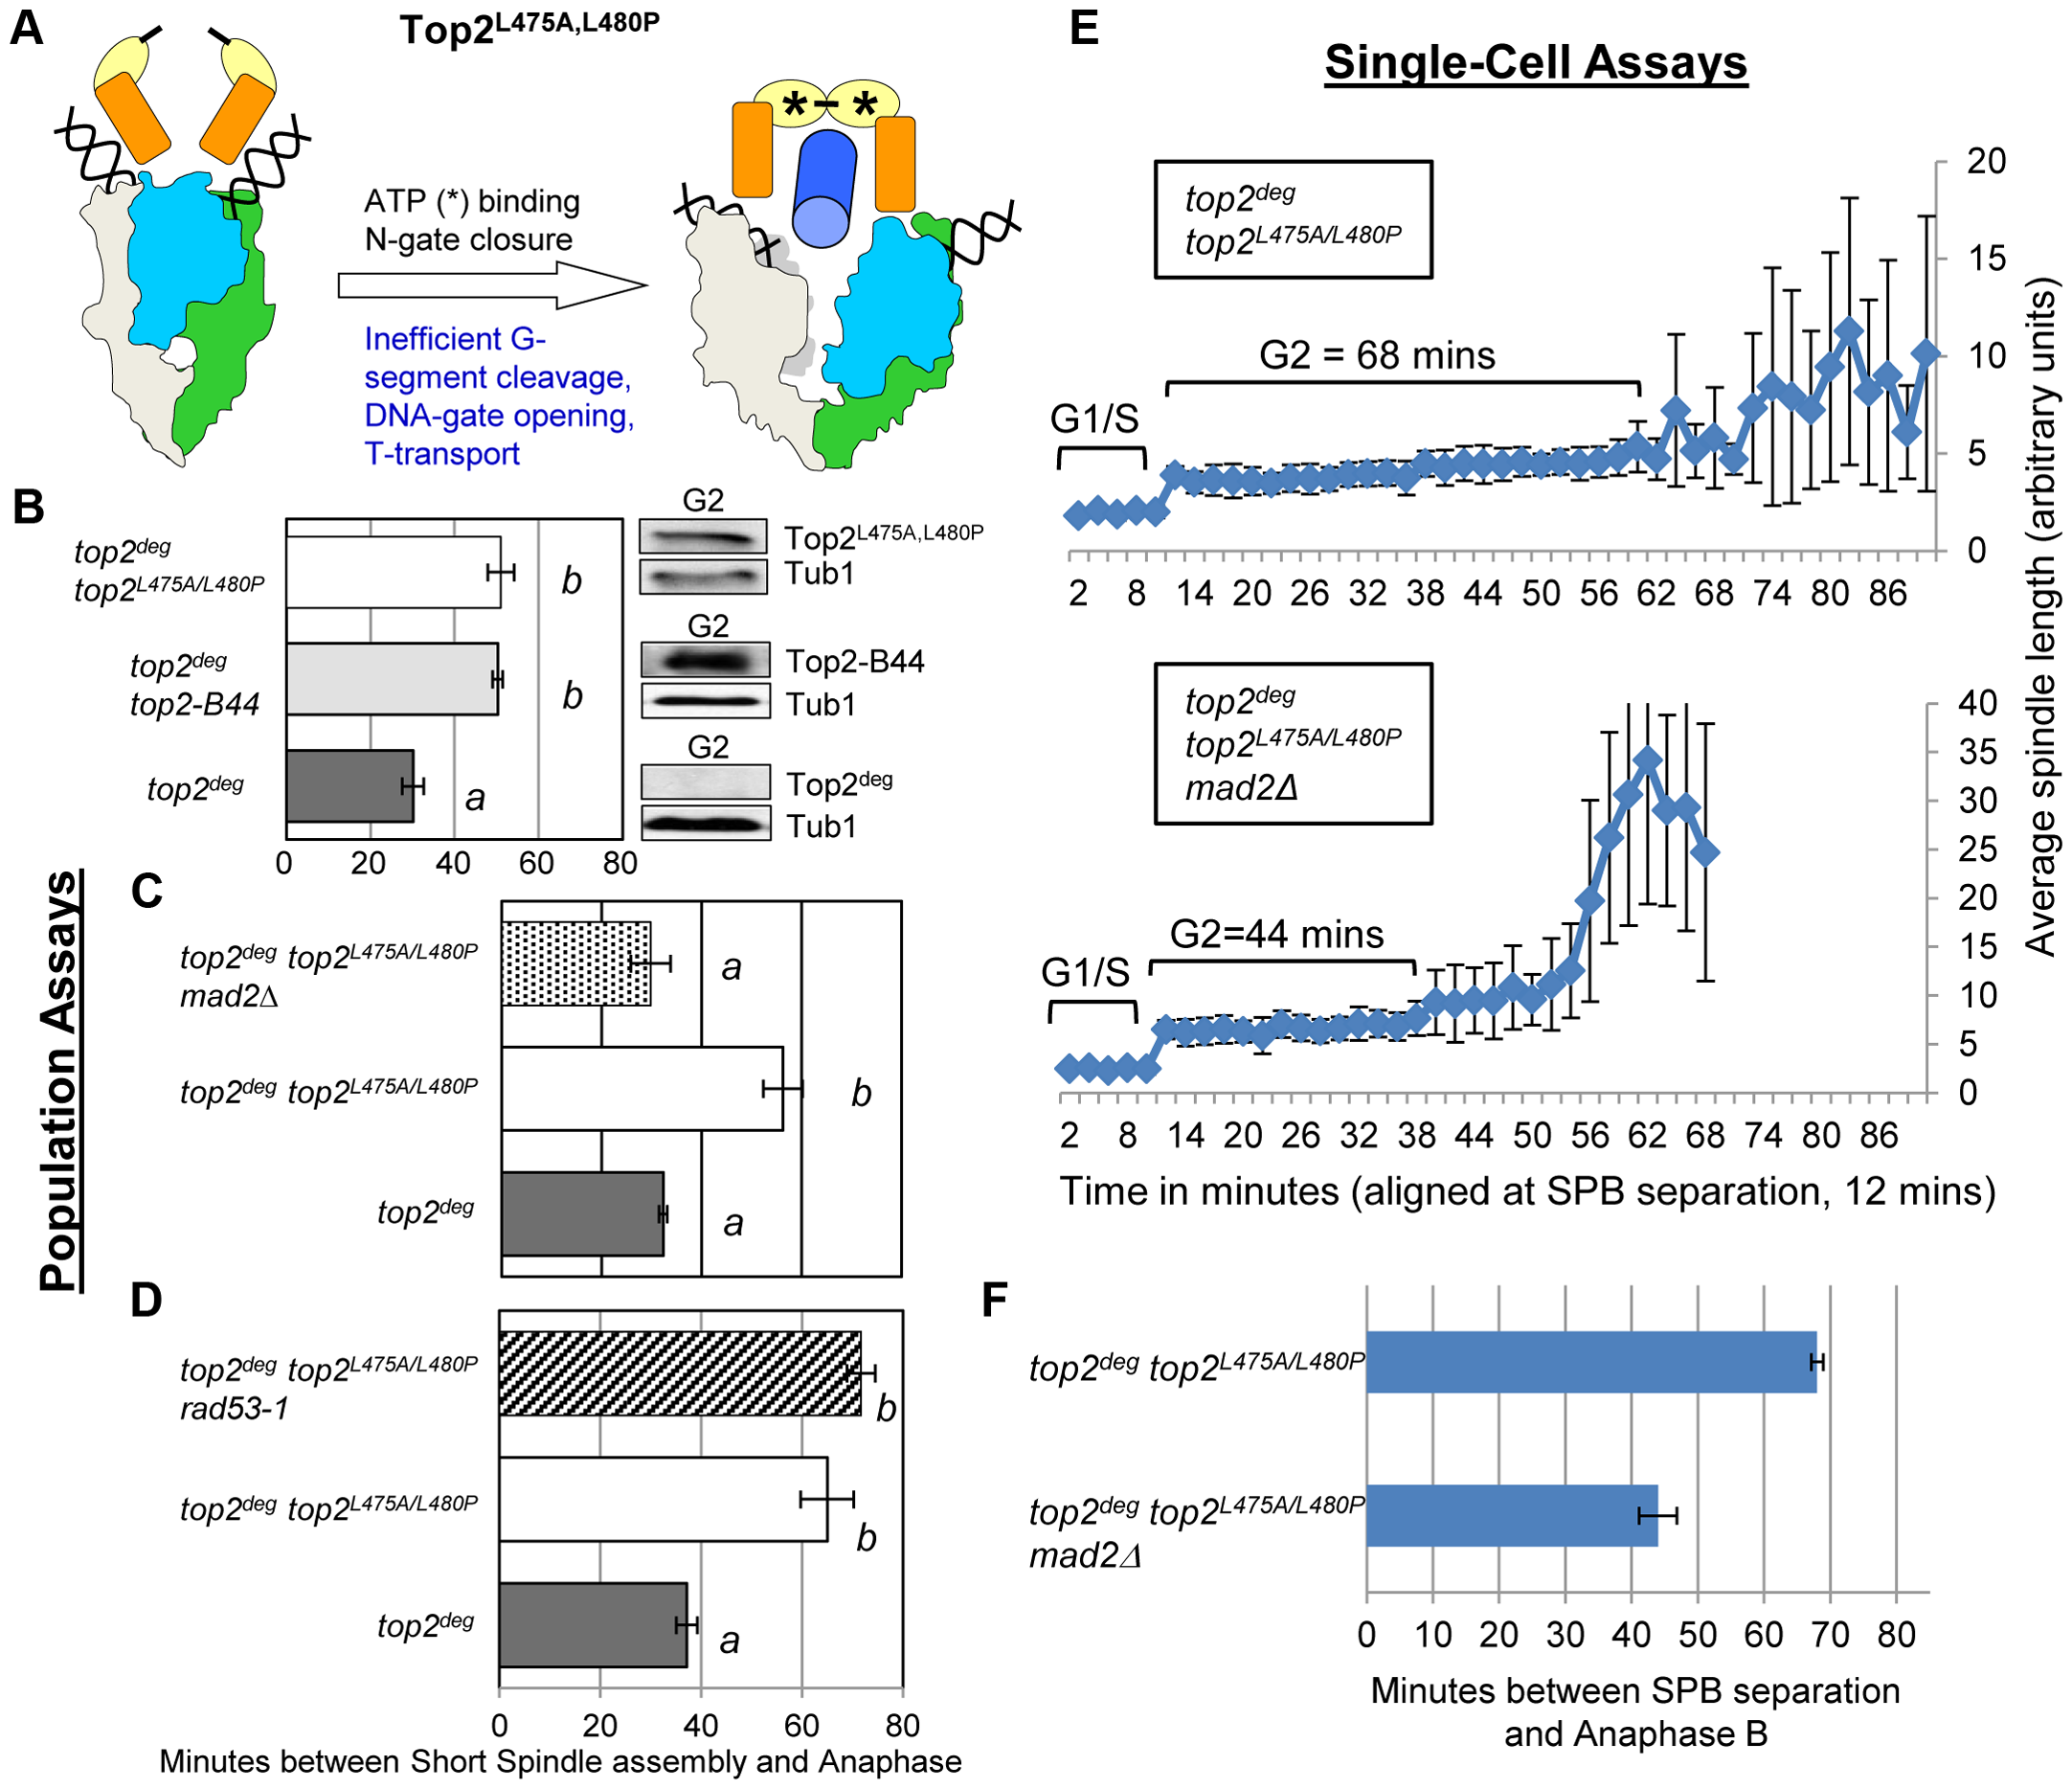 Defective T-Segment Transit may Activate the Mad2-Dependent Checkpoint.